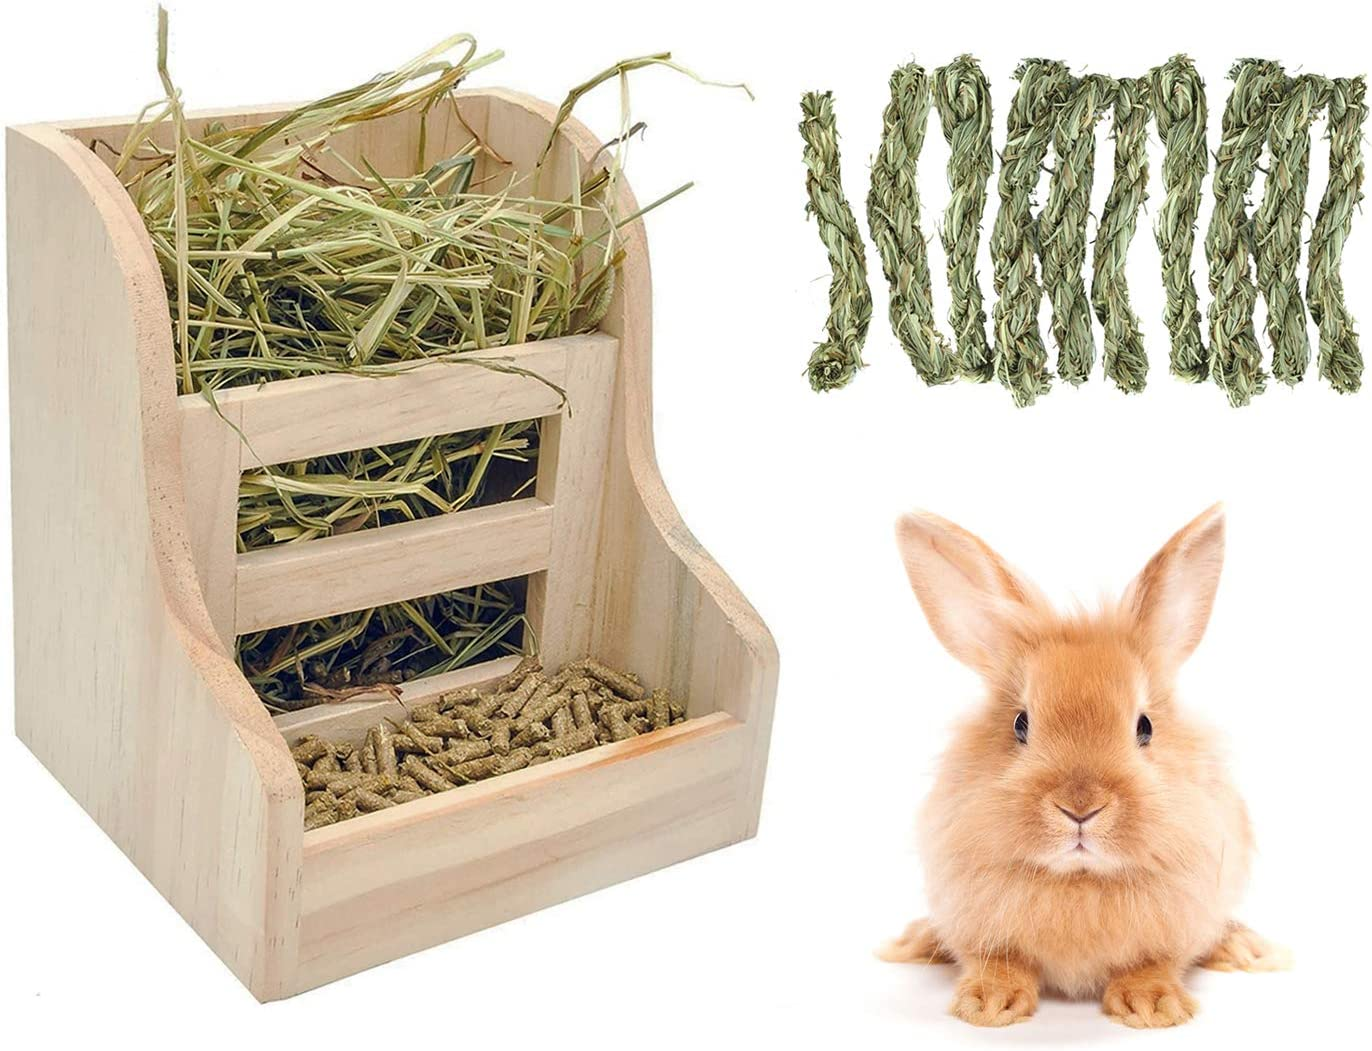 Rabbit Hay Feeder Rack,Wooden Wall-mountable Grass Food Bin Hand-Woven Timothy Hay Twist for Small Animal Supplies Rabbit Bunny Chinchilla Guinea Pig Hamsters